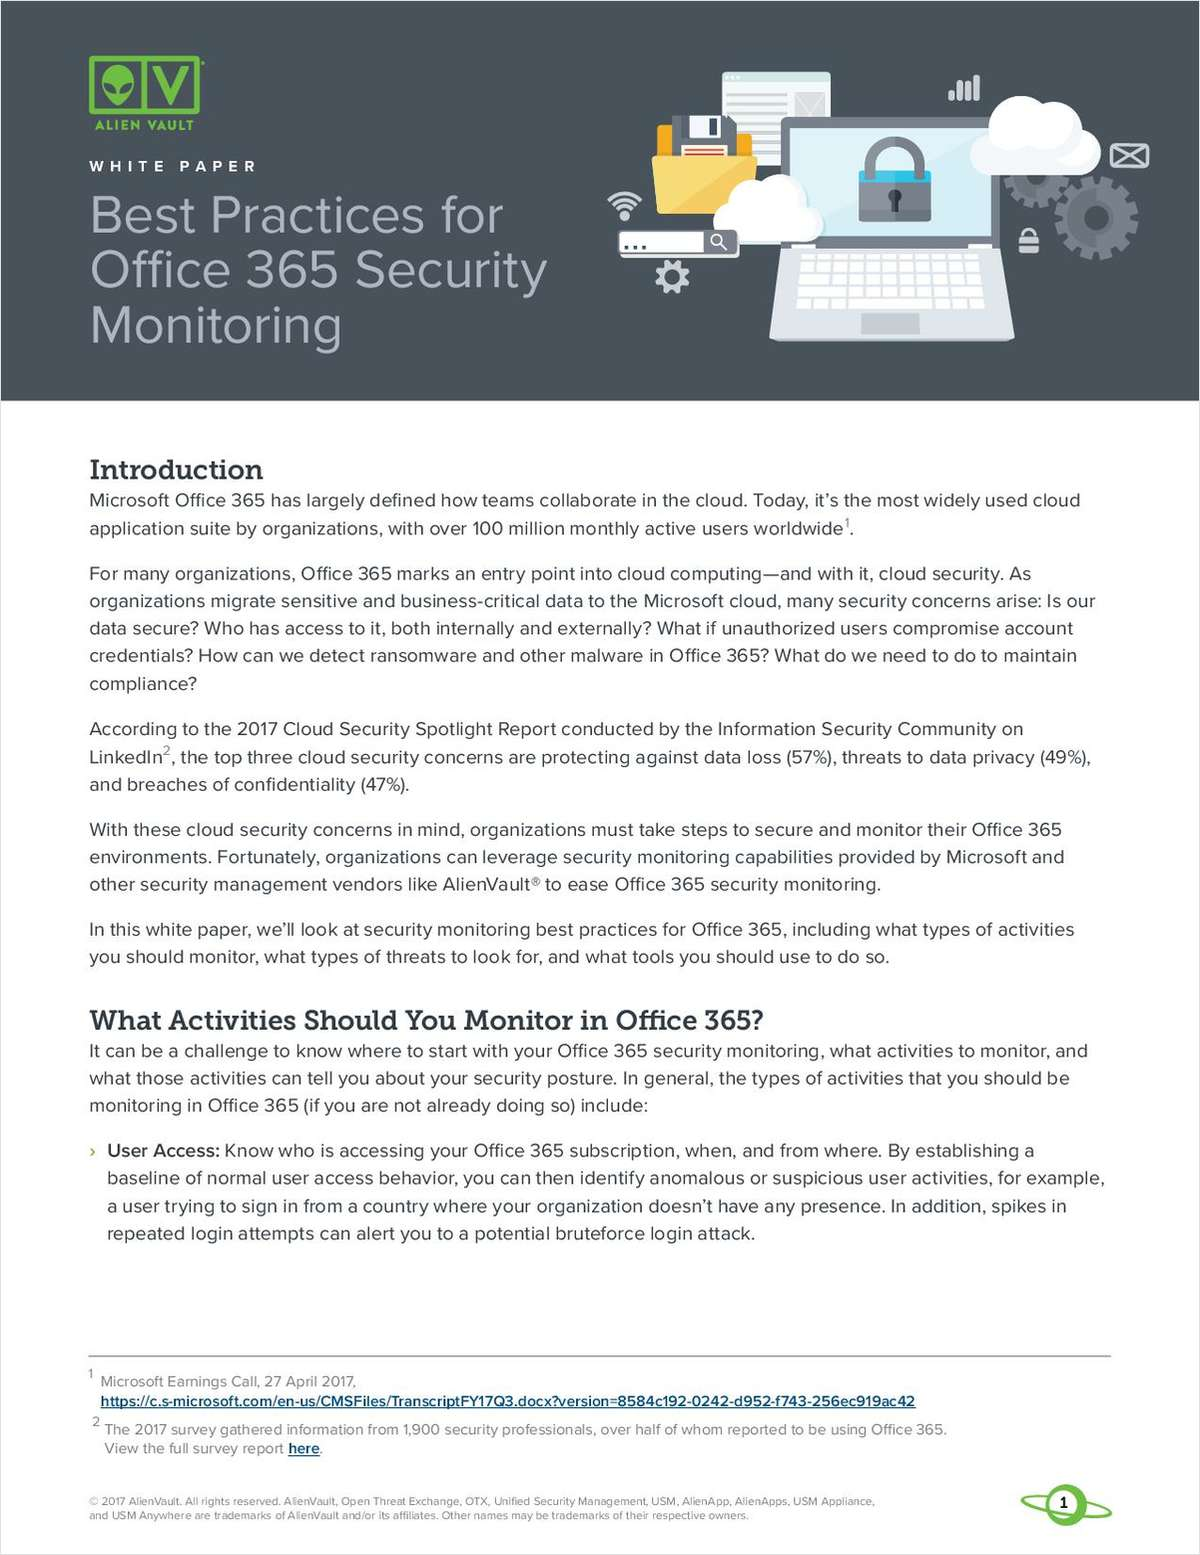 Best Practices for Office 365 Security Monitoring